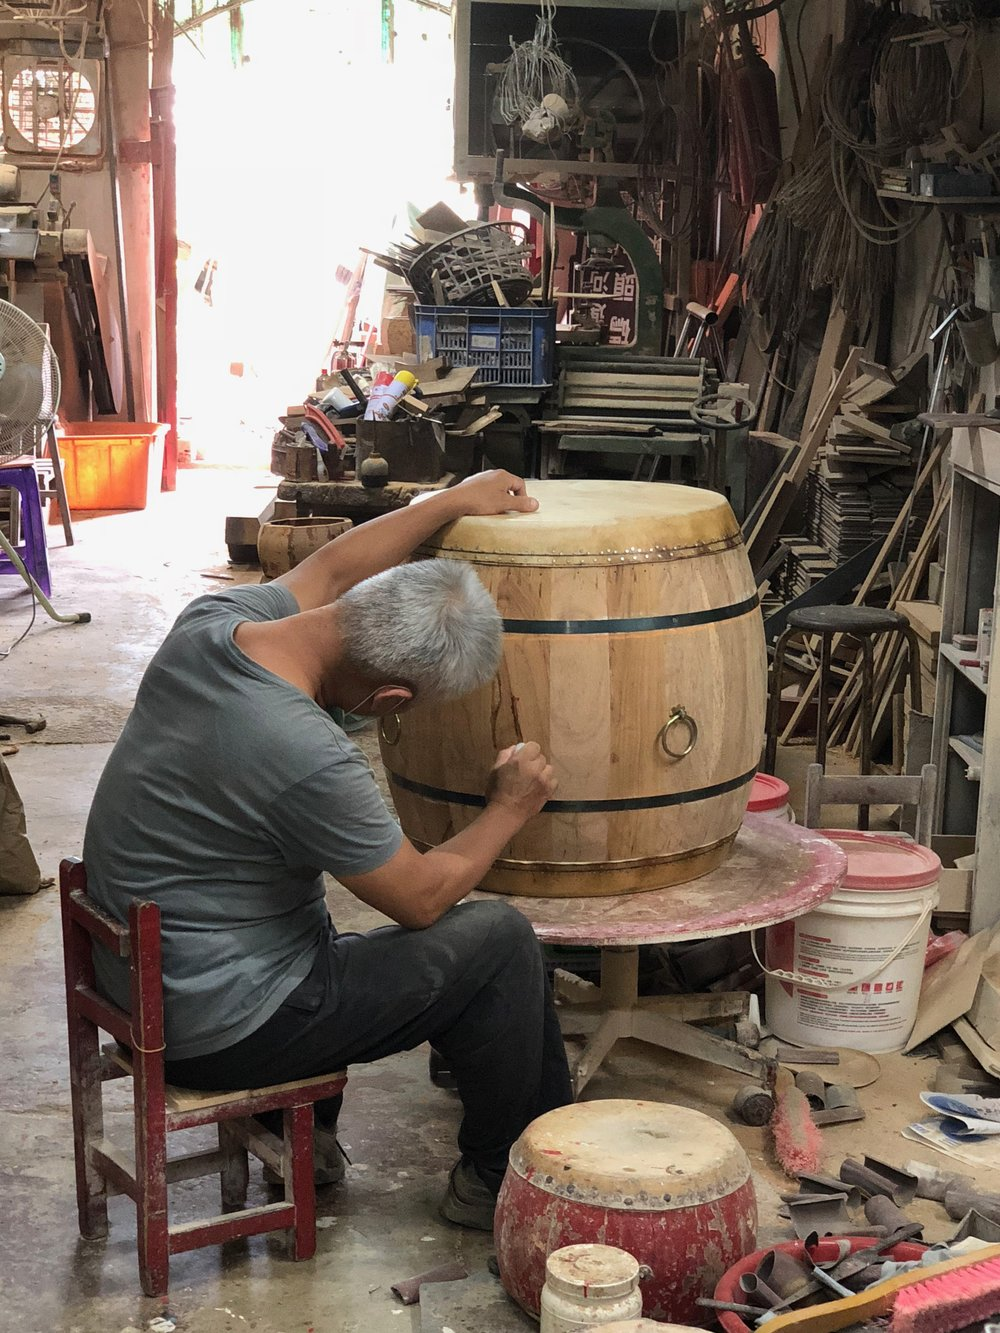 at the drum maker, Tainan Taiwan, August 2018.